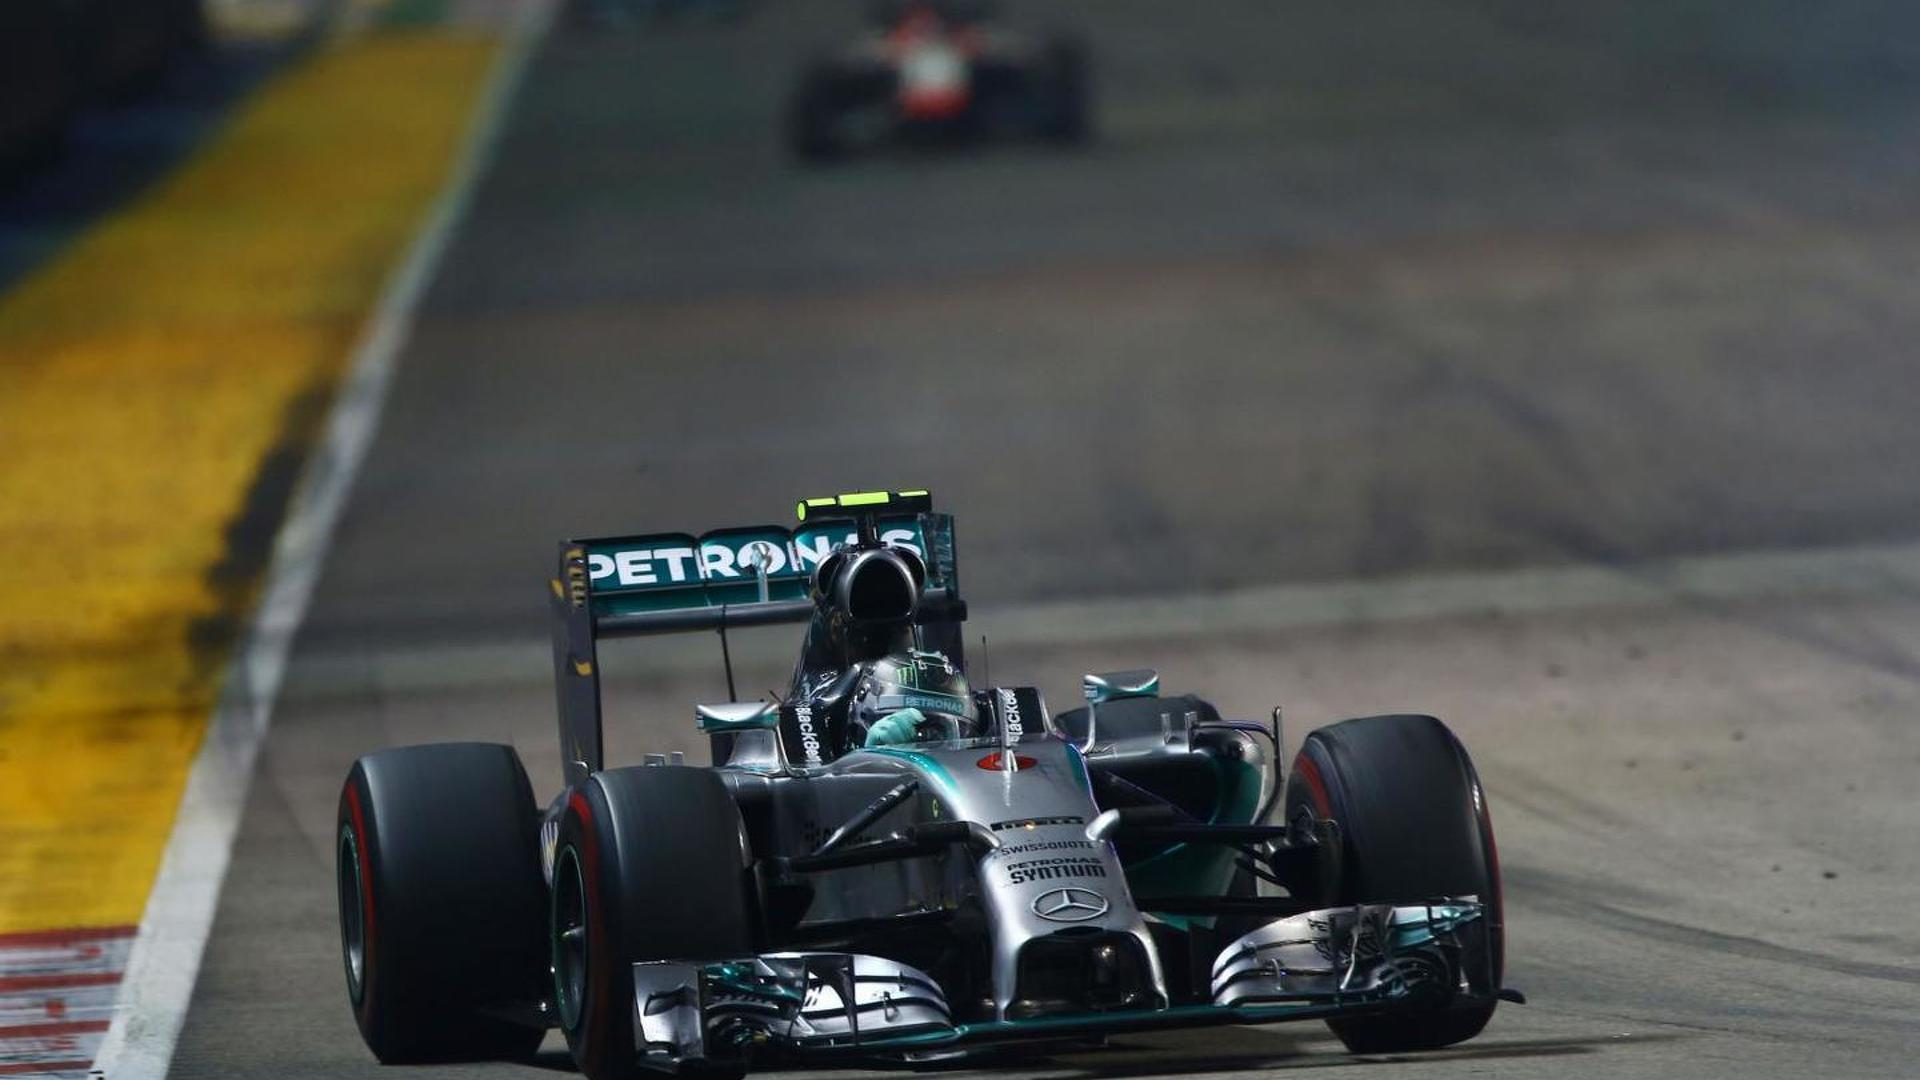 Mercedes says reliability must now crown 2014 champion